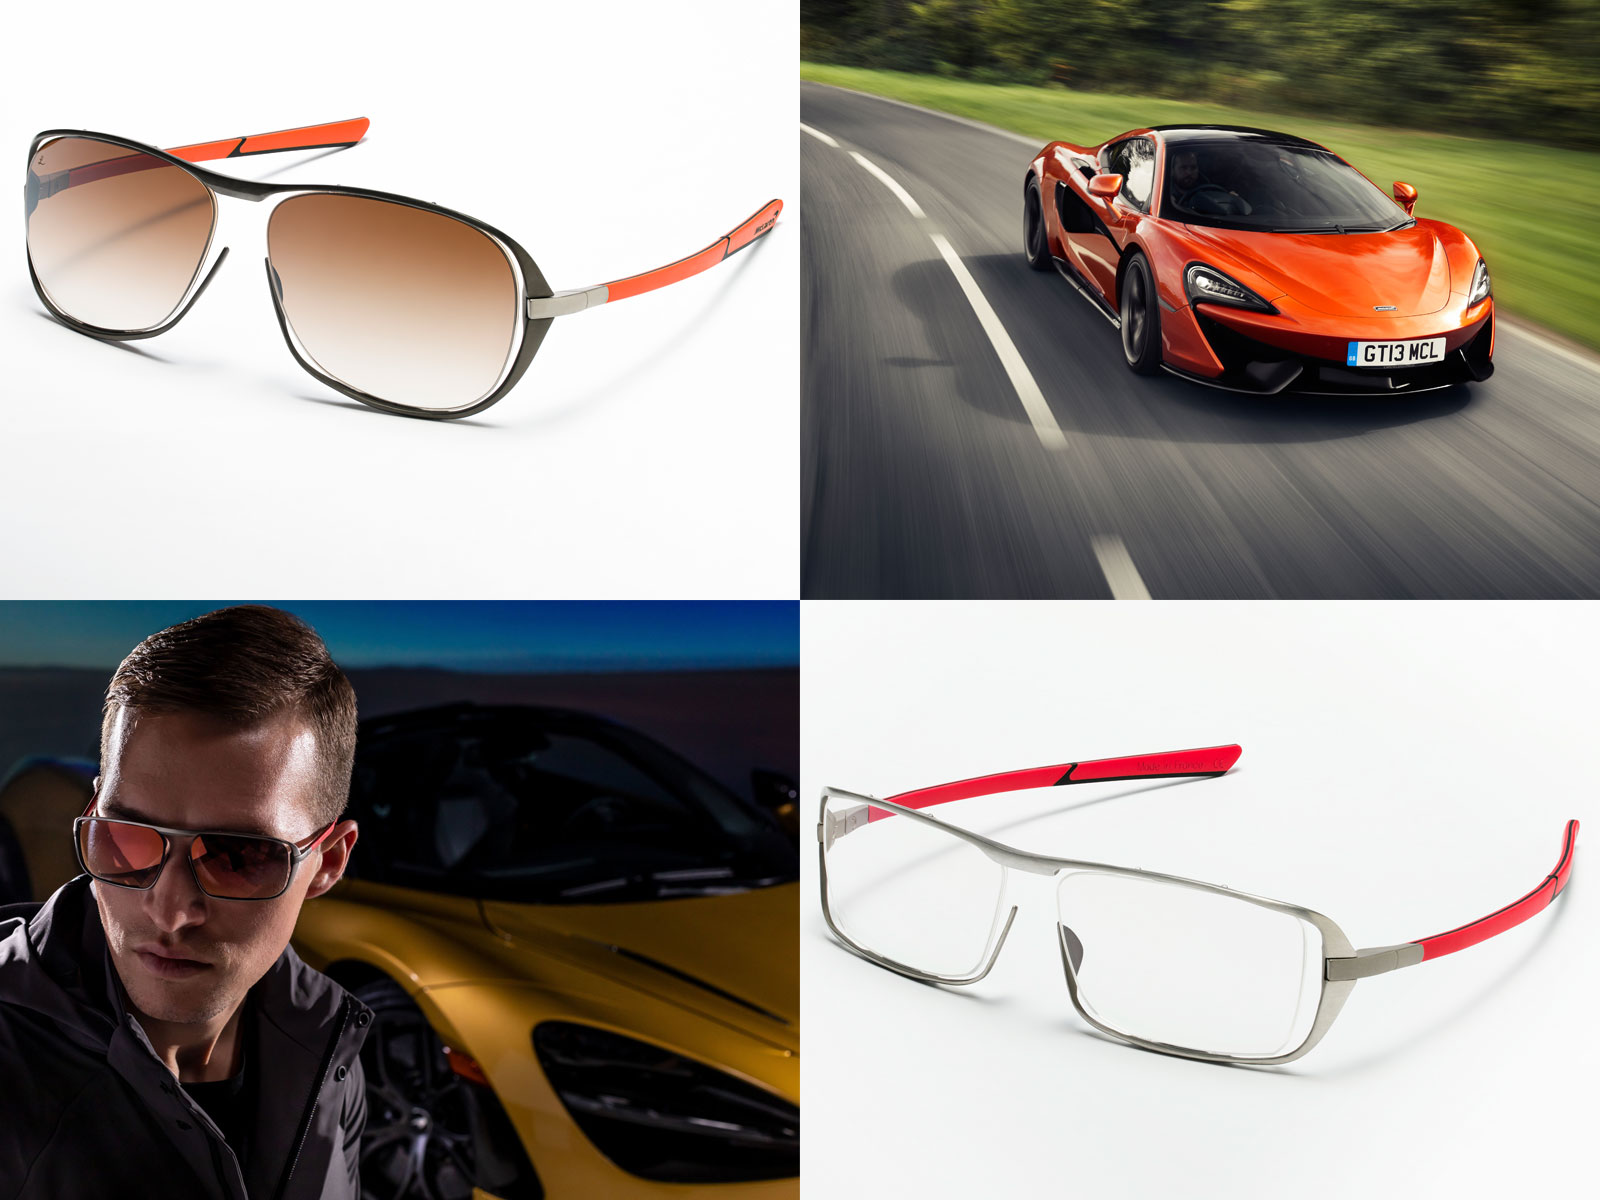 McLaren Automotive Eyewear